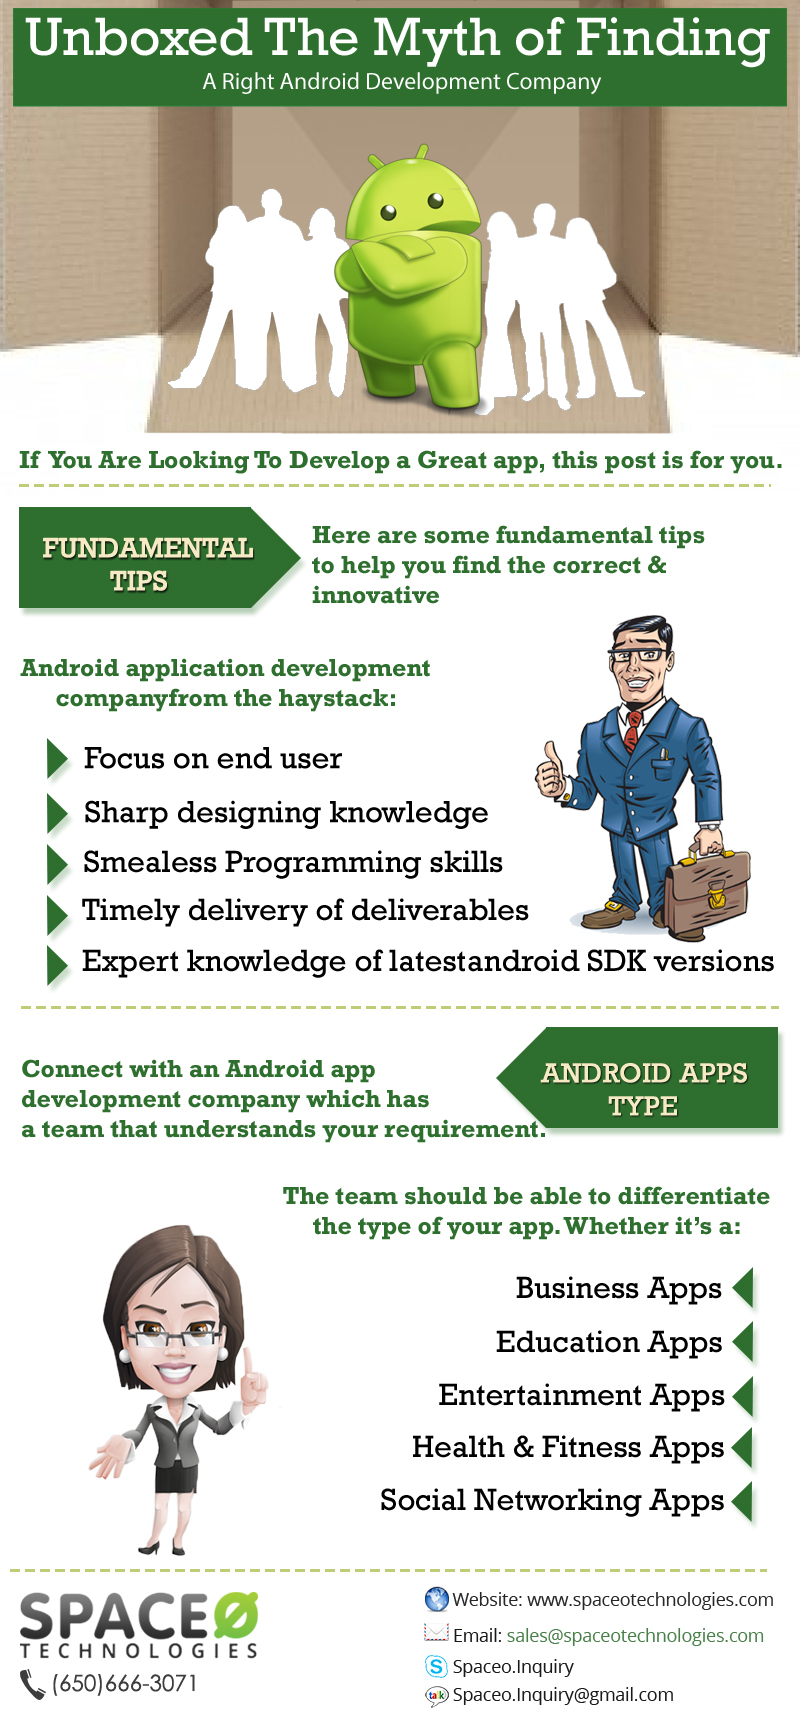 Find The Right Android App Development Company